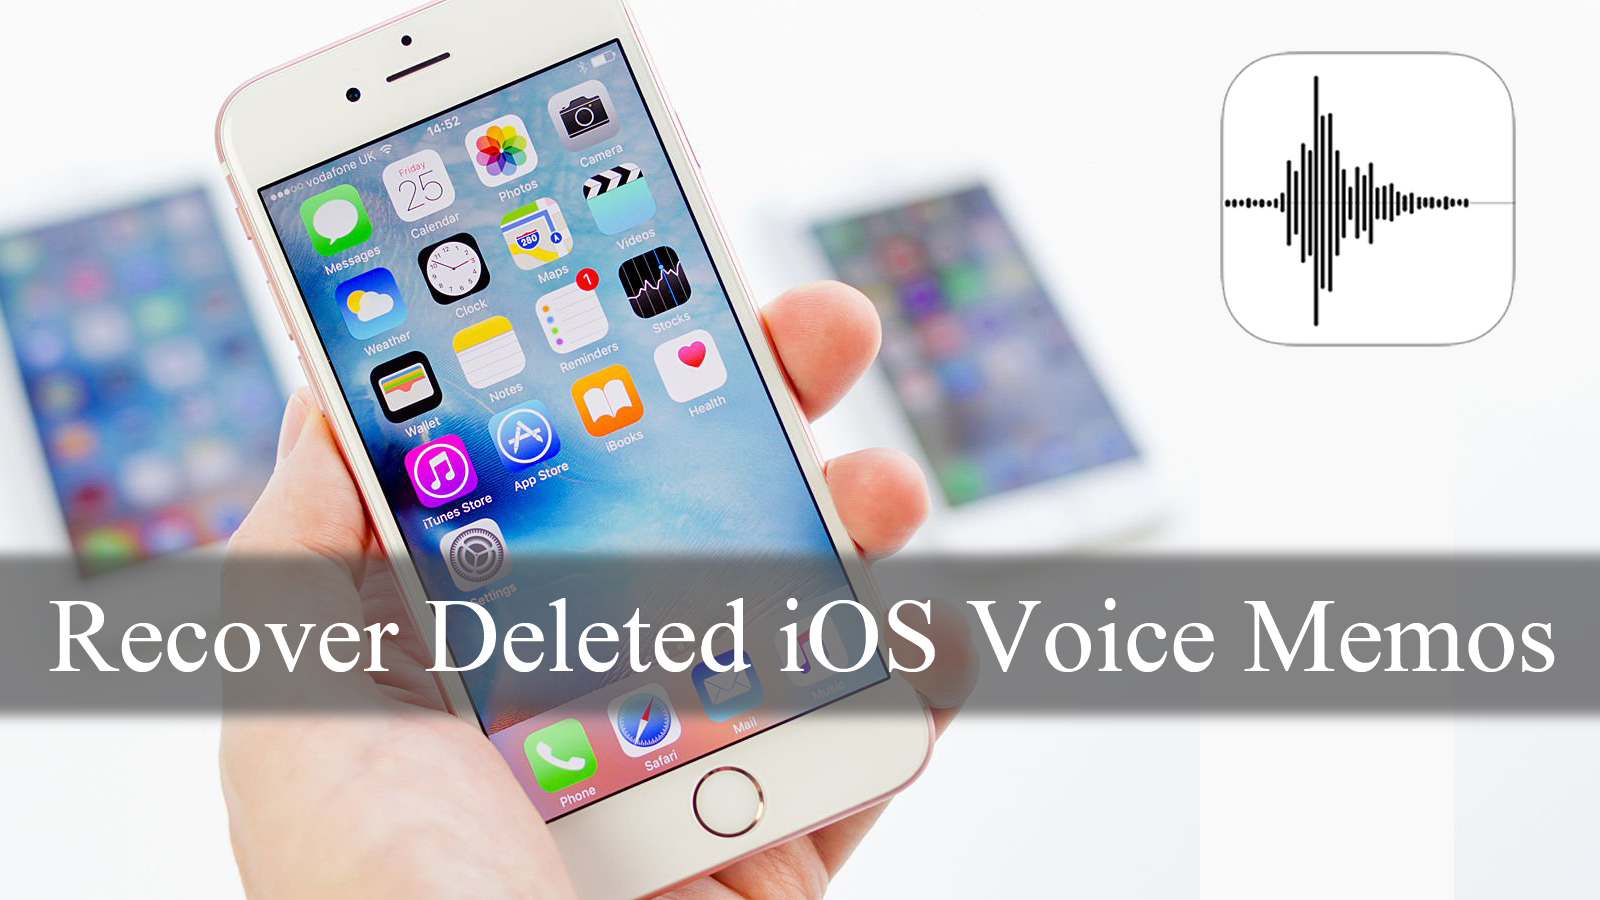 How to Recover Deleted Voice Memos from iPhone (iPhone 7 and iPhone